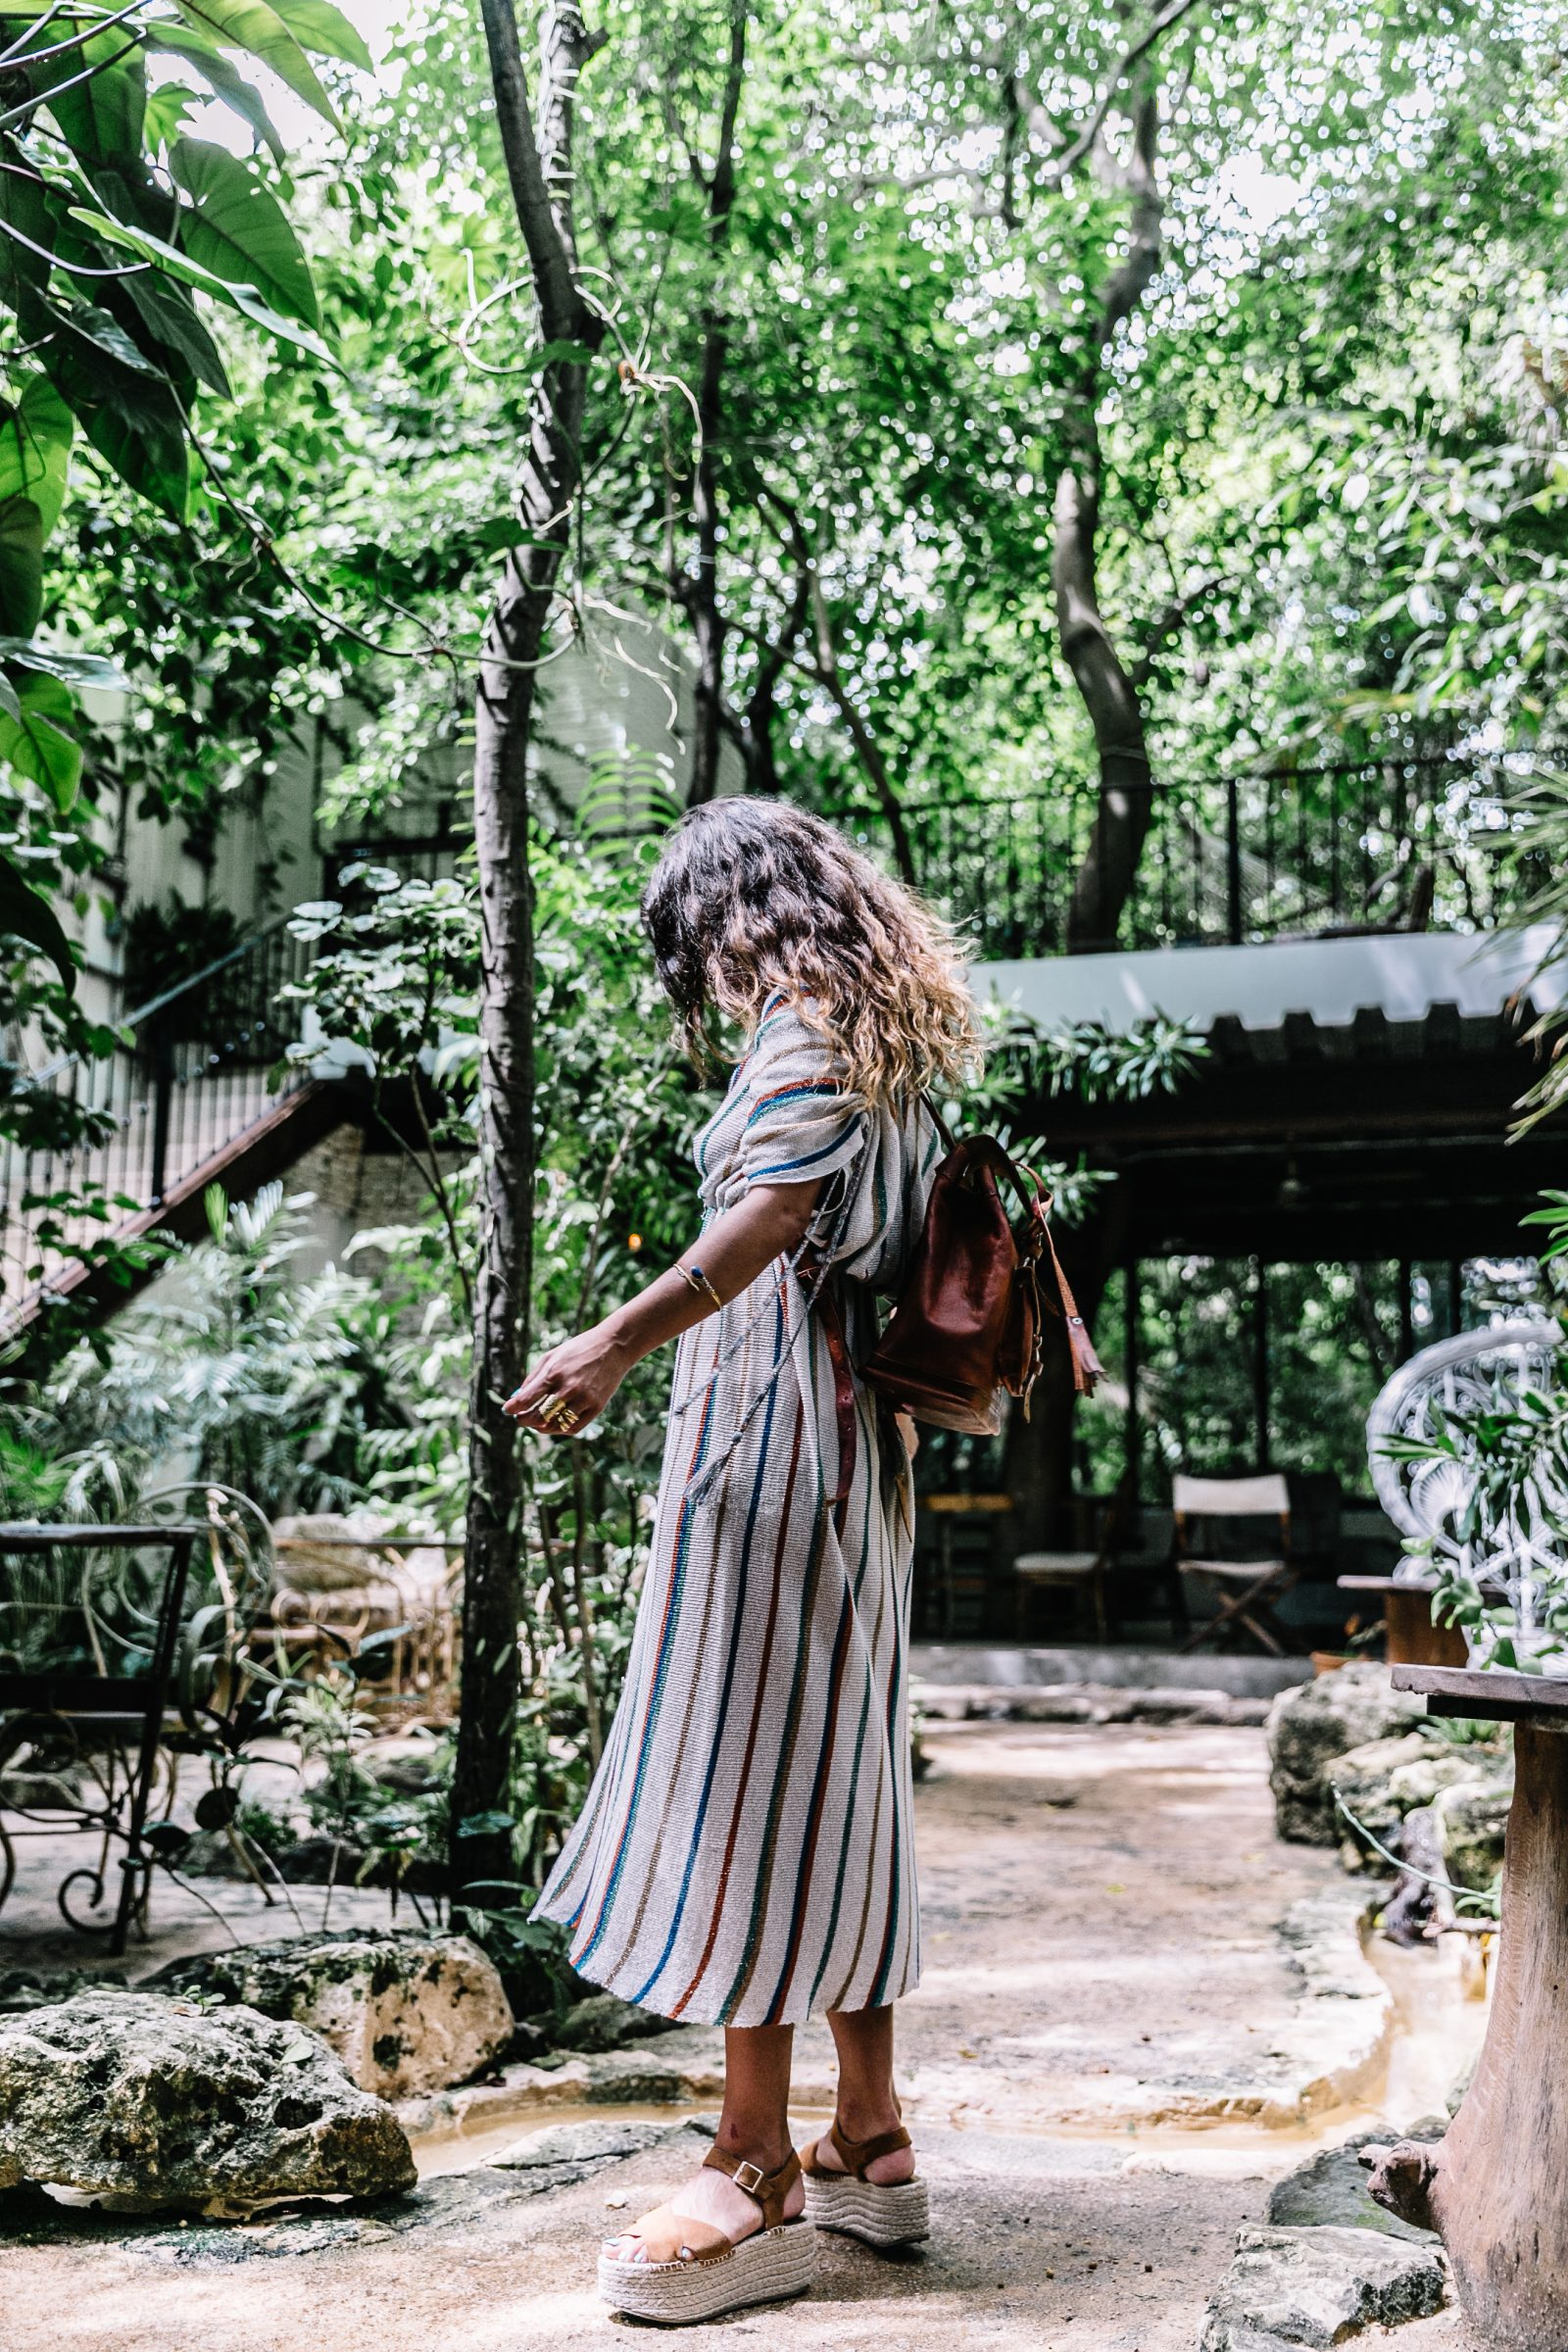 stripped_dress-leather_backpack-suede_espadrilles-mayan_ruins-hotel_esencia-sanara_tulum-beach-mexico-outfit-collage_vintage-6